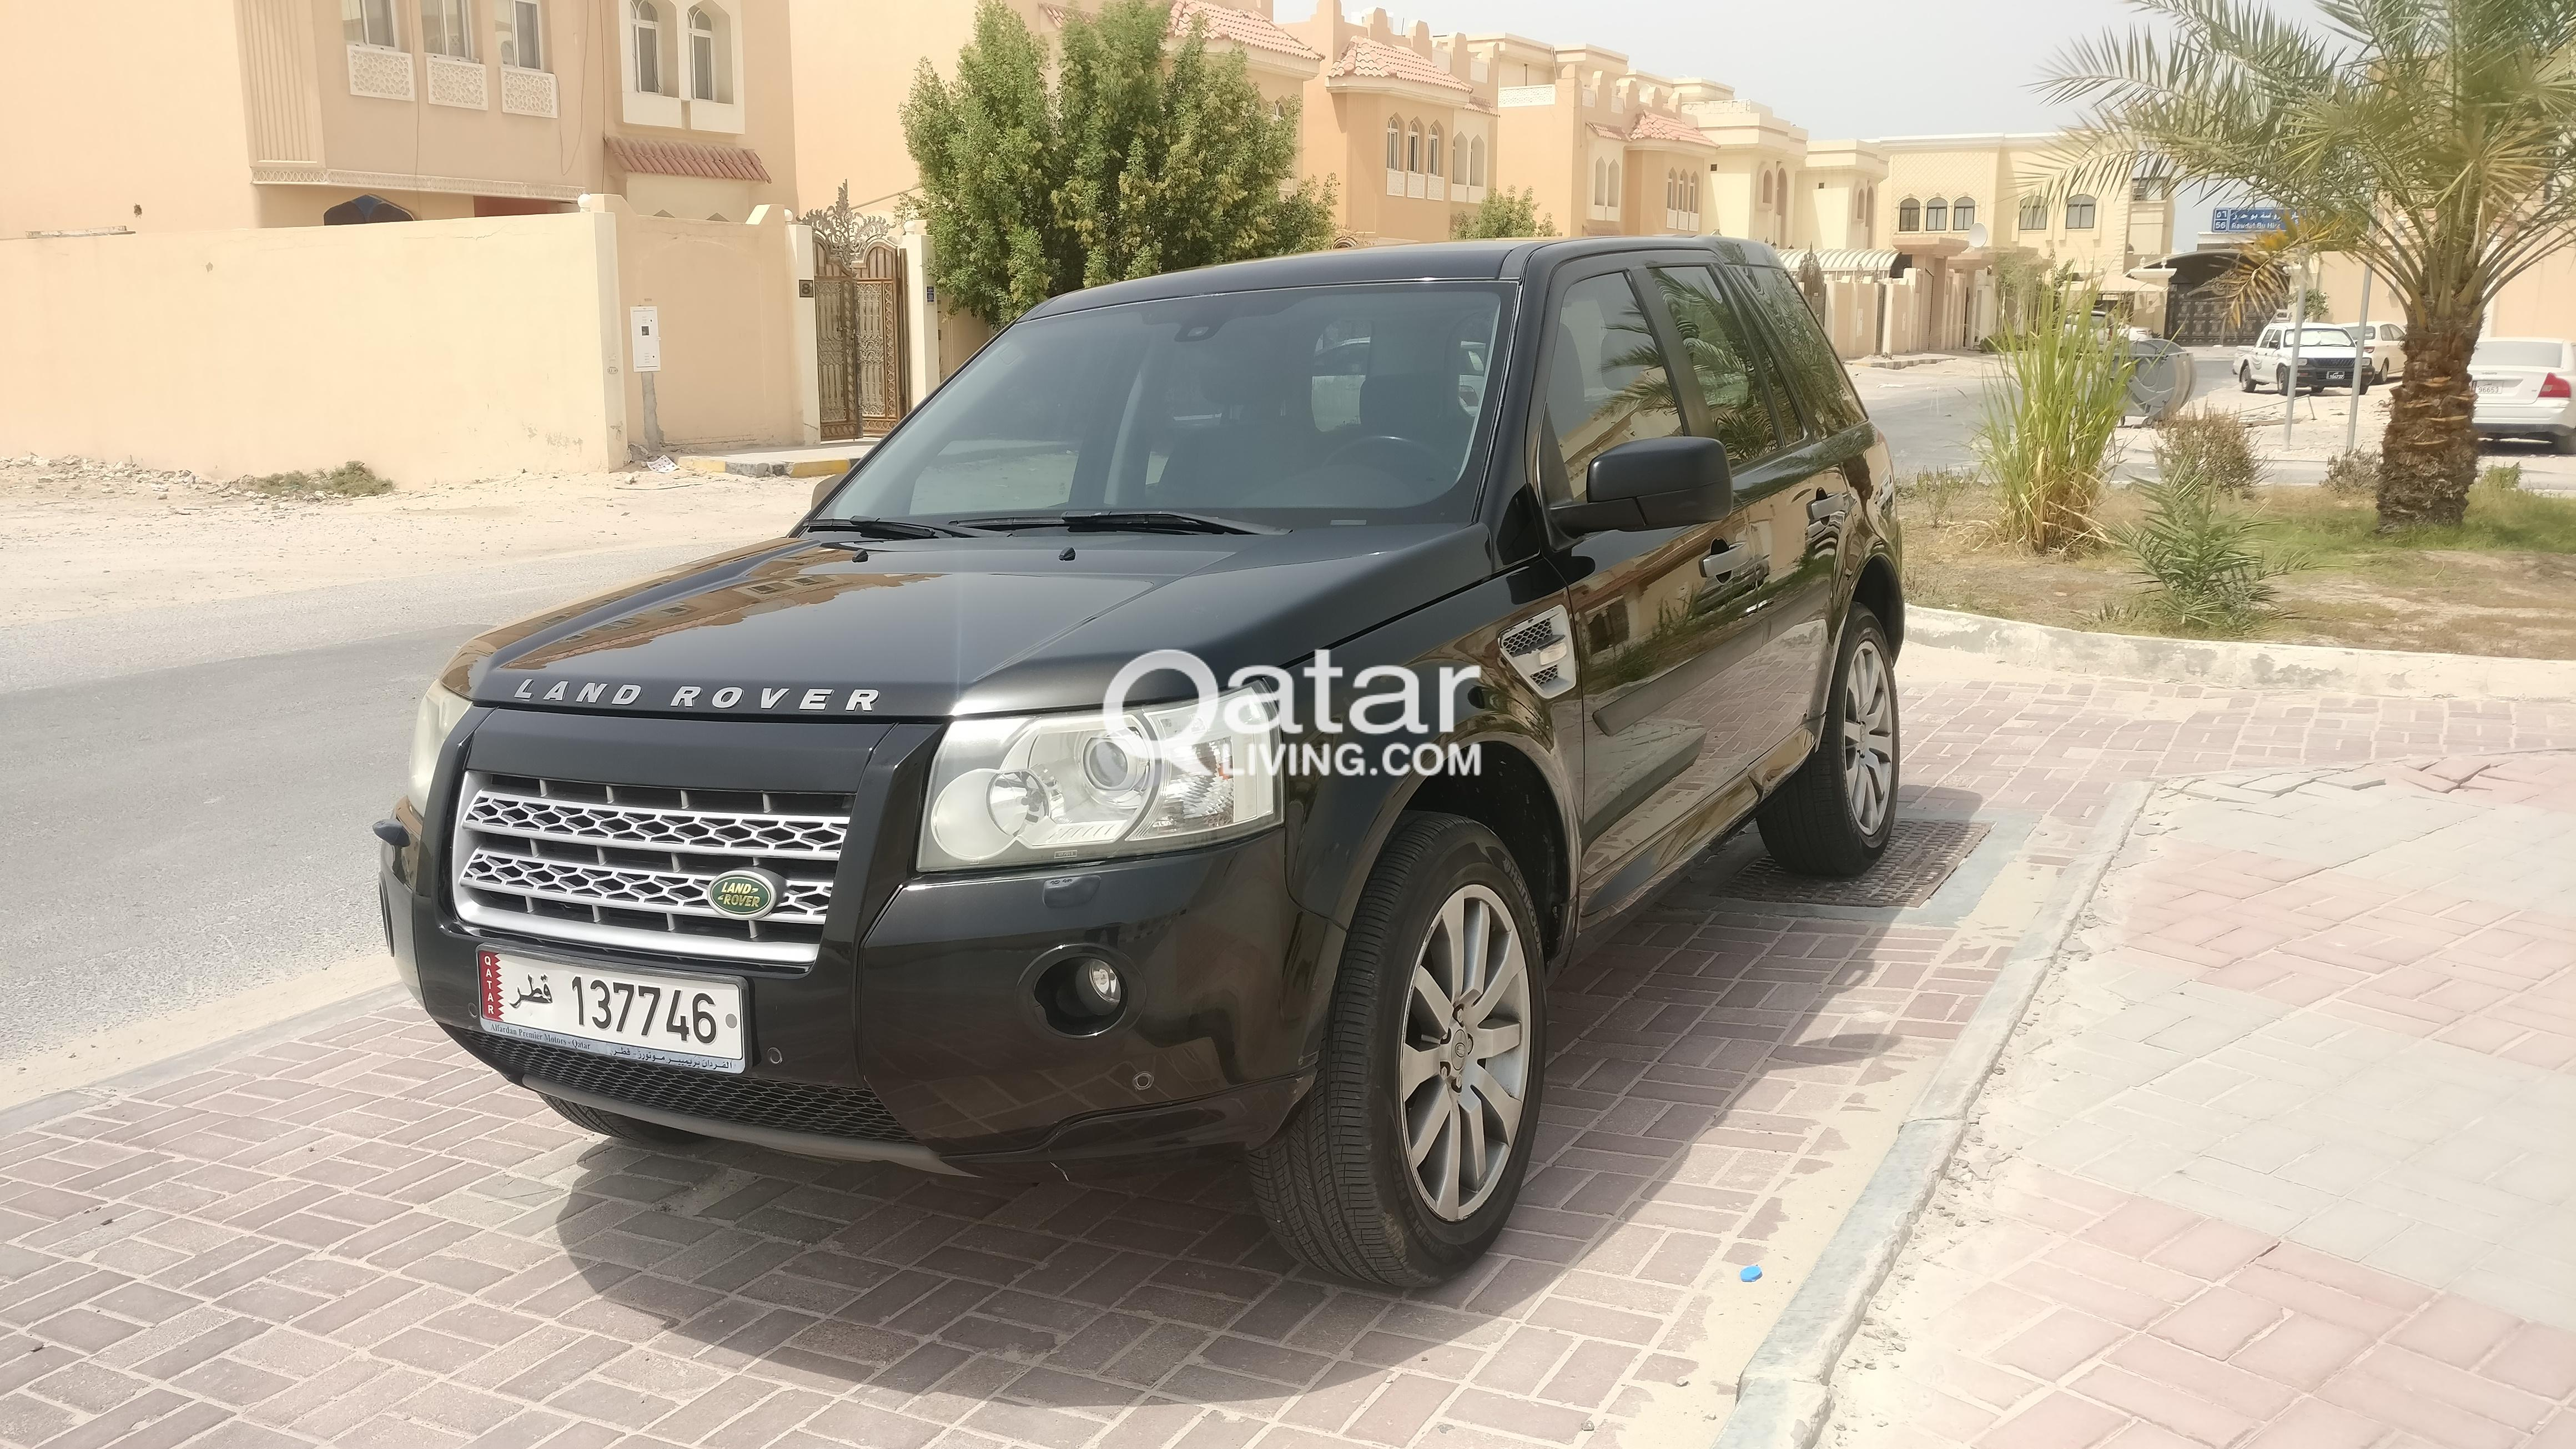 crop auto used fit sale rover shift francisco land supercharged jose landrover in for cars price by range san h w owner car format